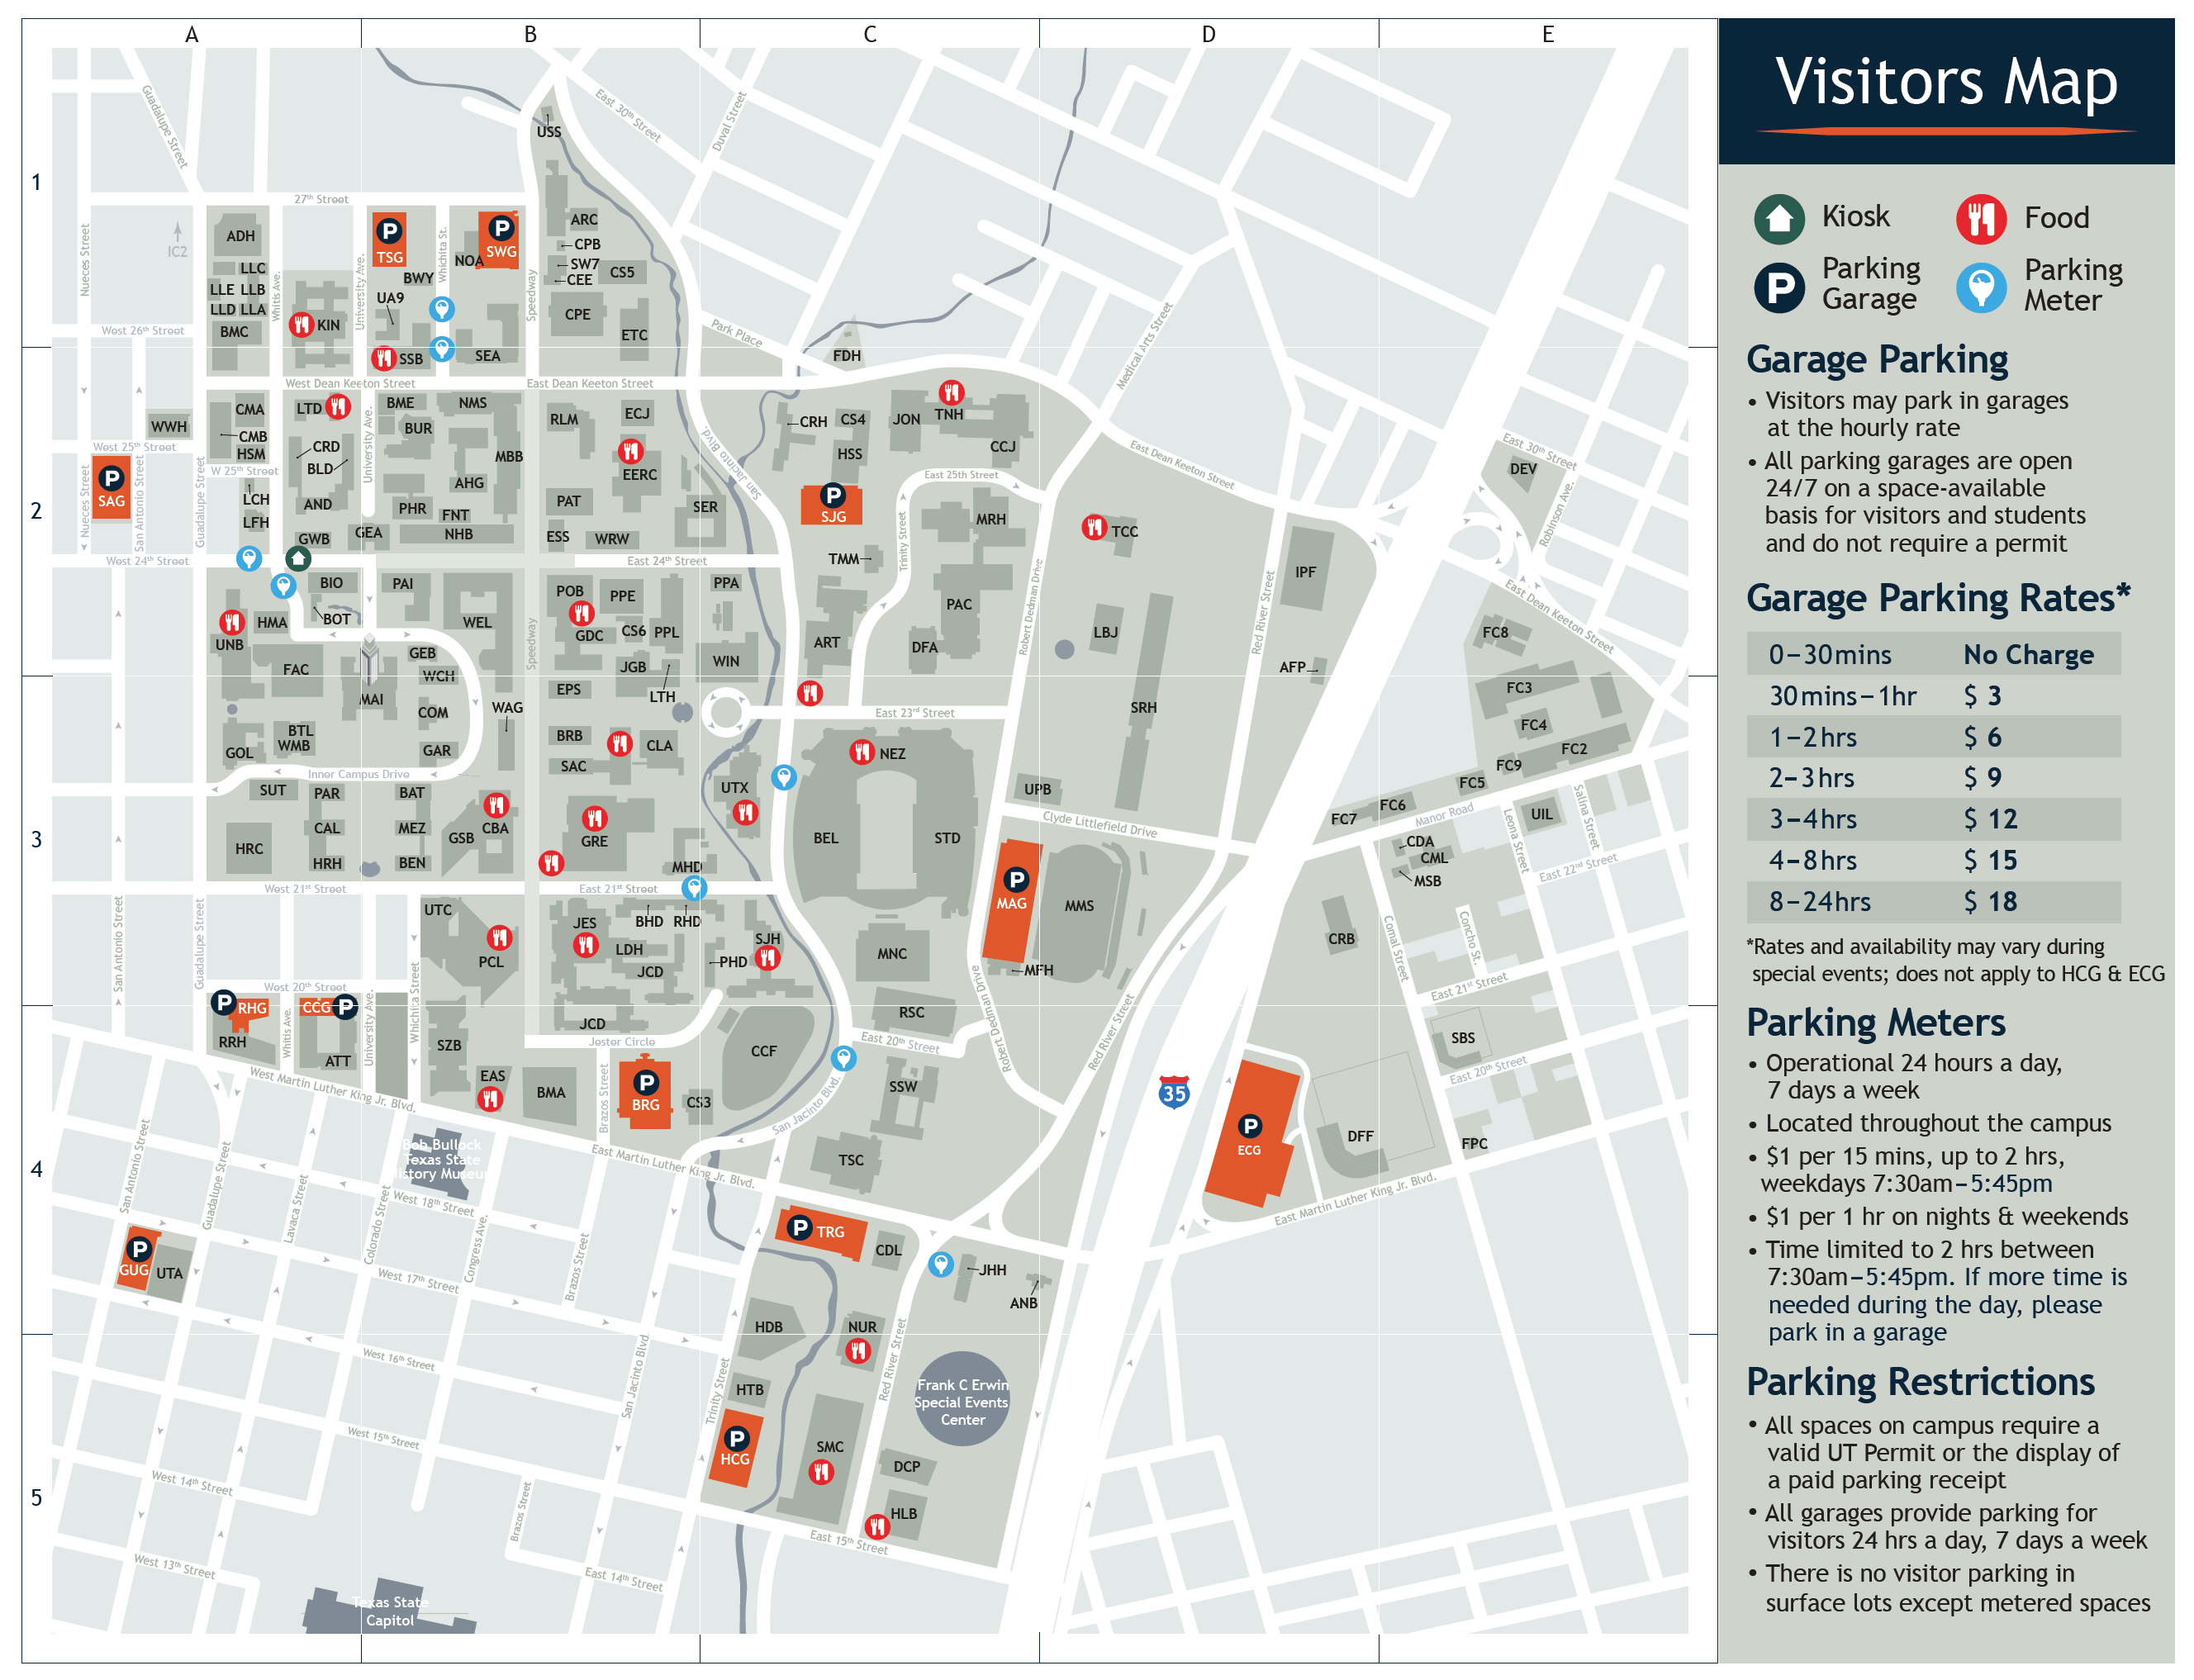 university of texas austin map Visitors Parking Map Png Png Parking Transportation The university of texas austin map